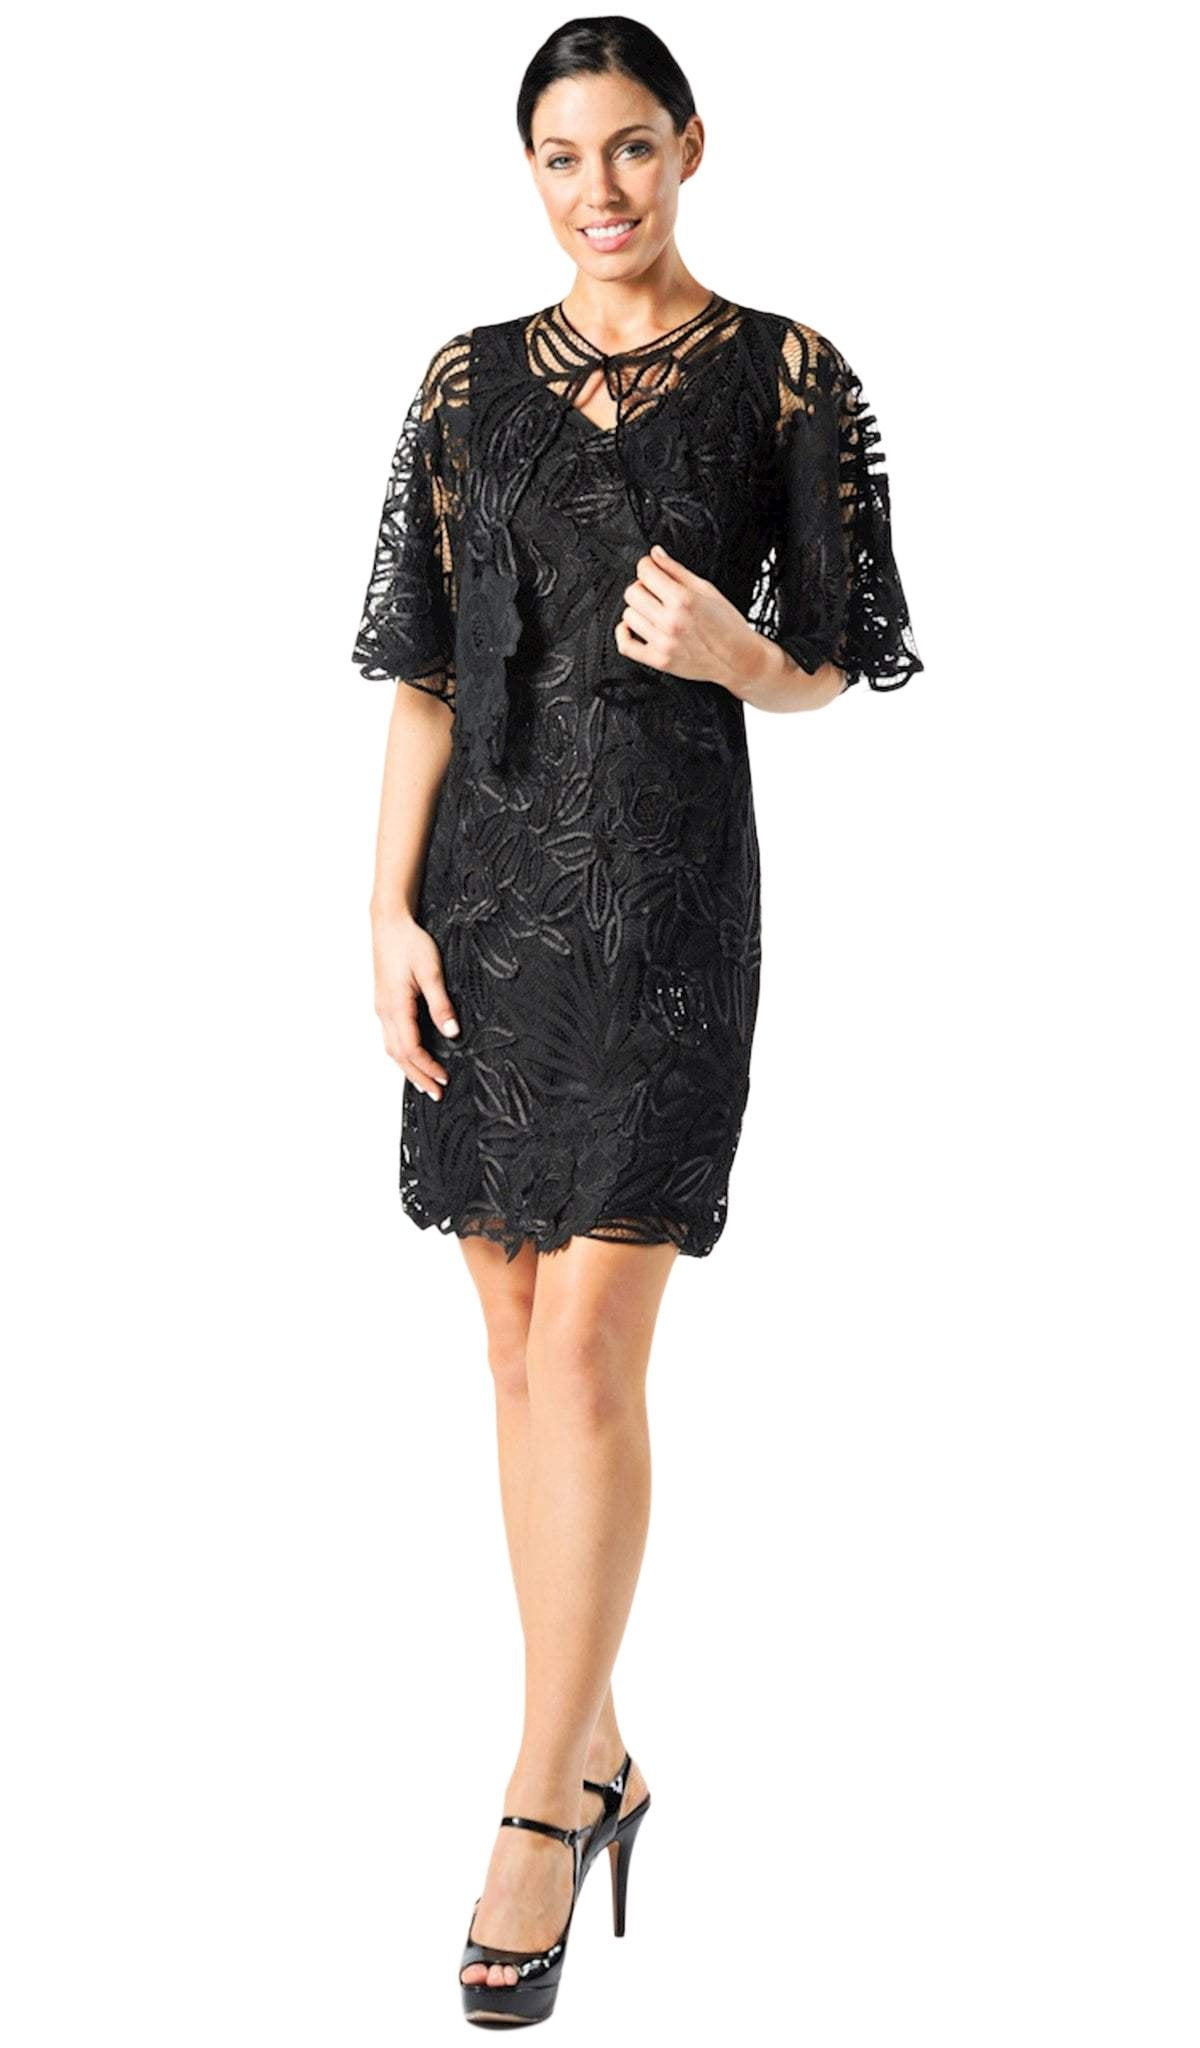 Soulmates - D1107SC Embroidered Semi-Formal Short Dress